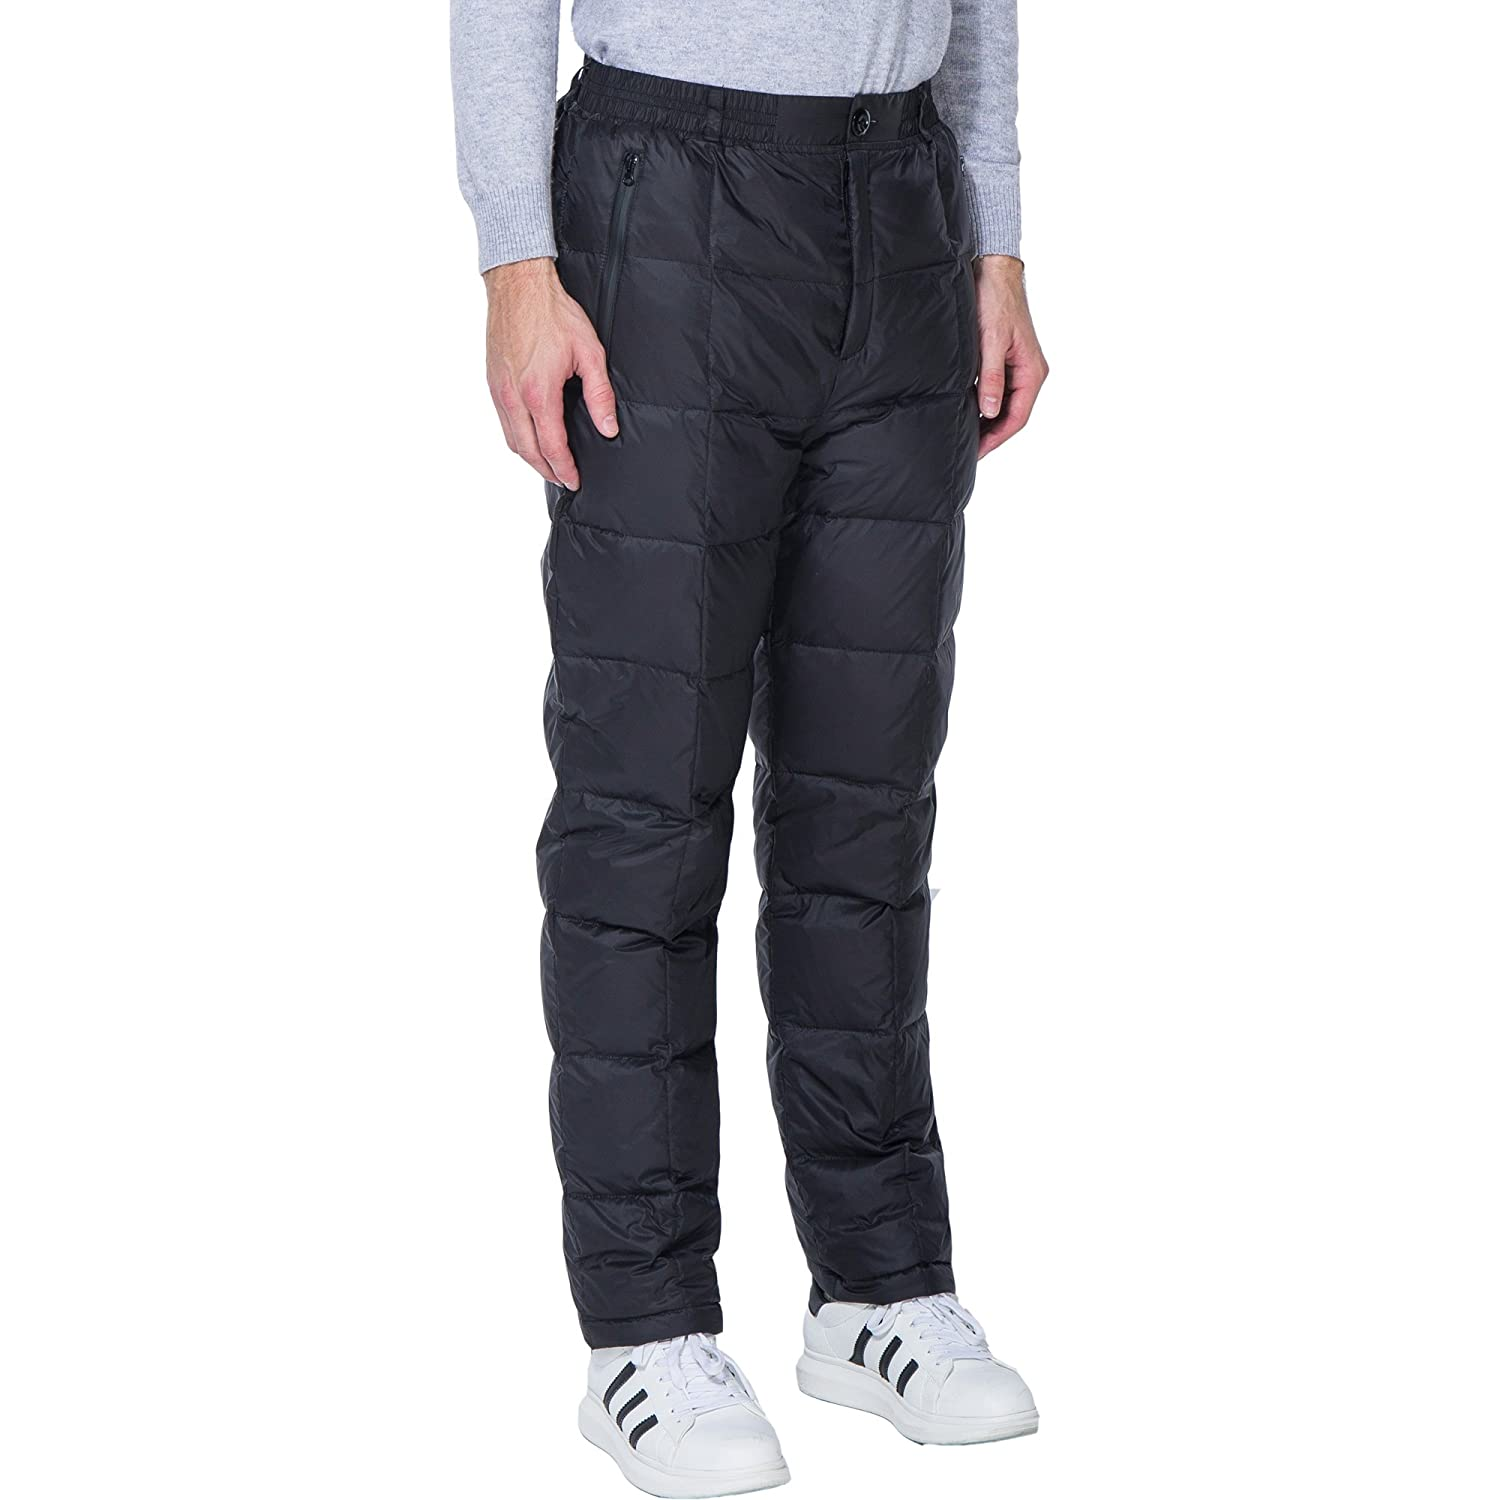 PANLTCY Mens Winter Warm Utility Down Pants Sassy High Waisted Nylon Compression Snow Trousers